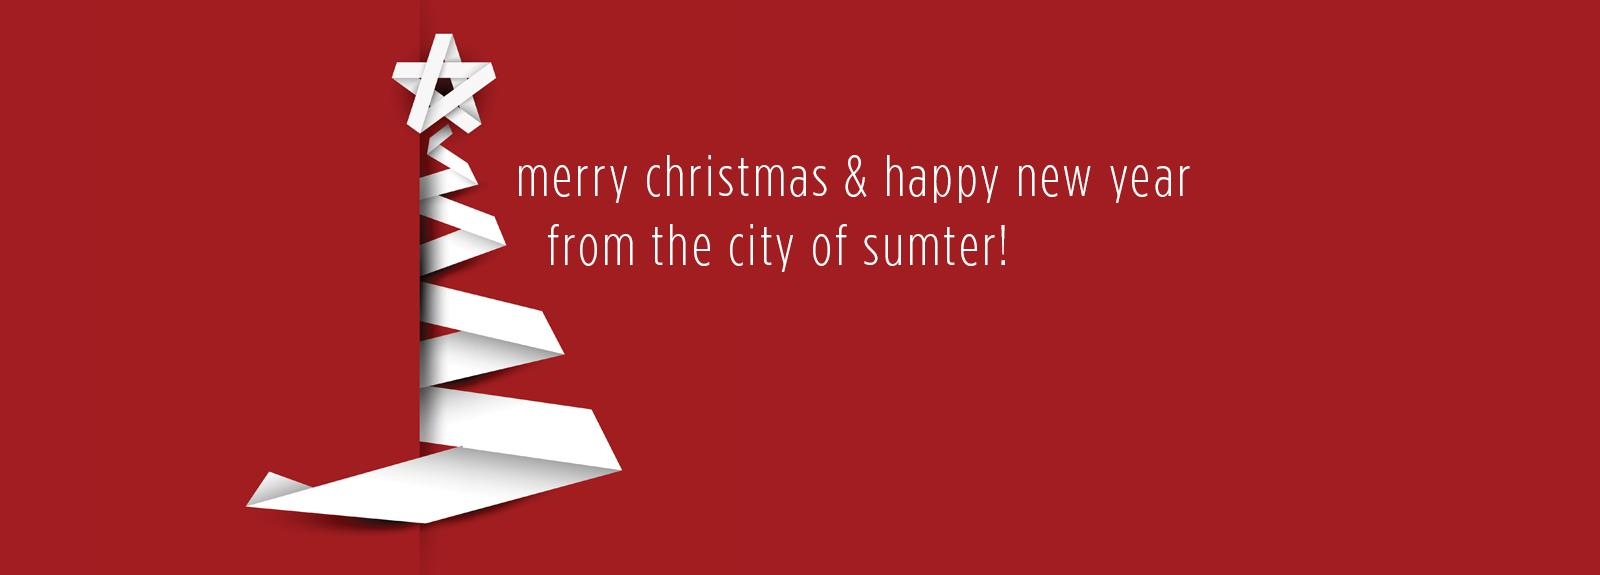 Merry Christmas & Happy New Year from the City of Sumter!